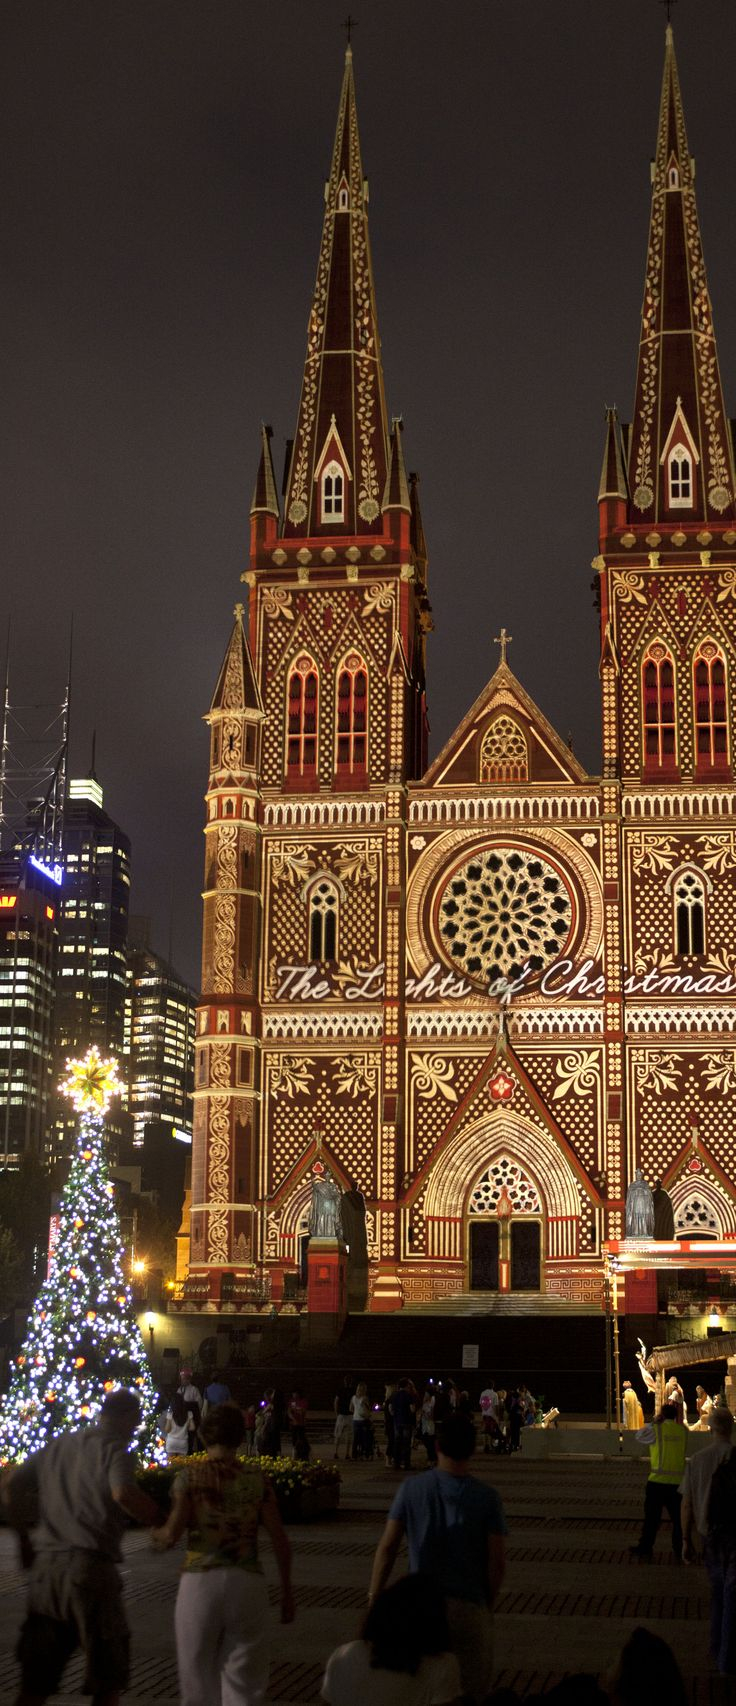 Christmas lights, St Mary's Cathedral in Sydney, Australia